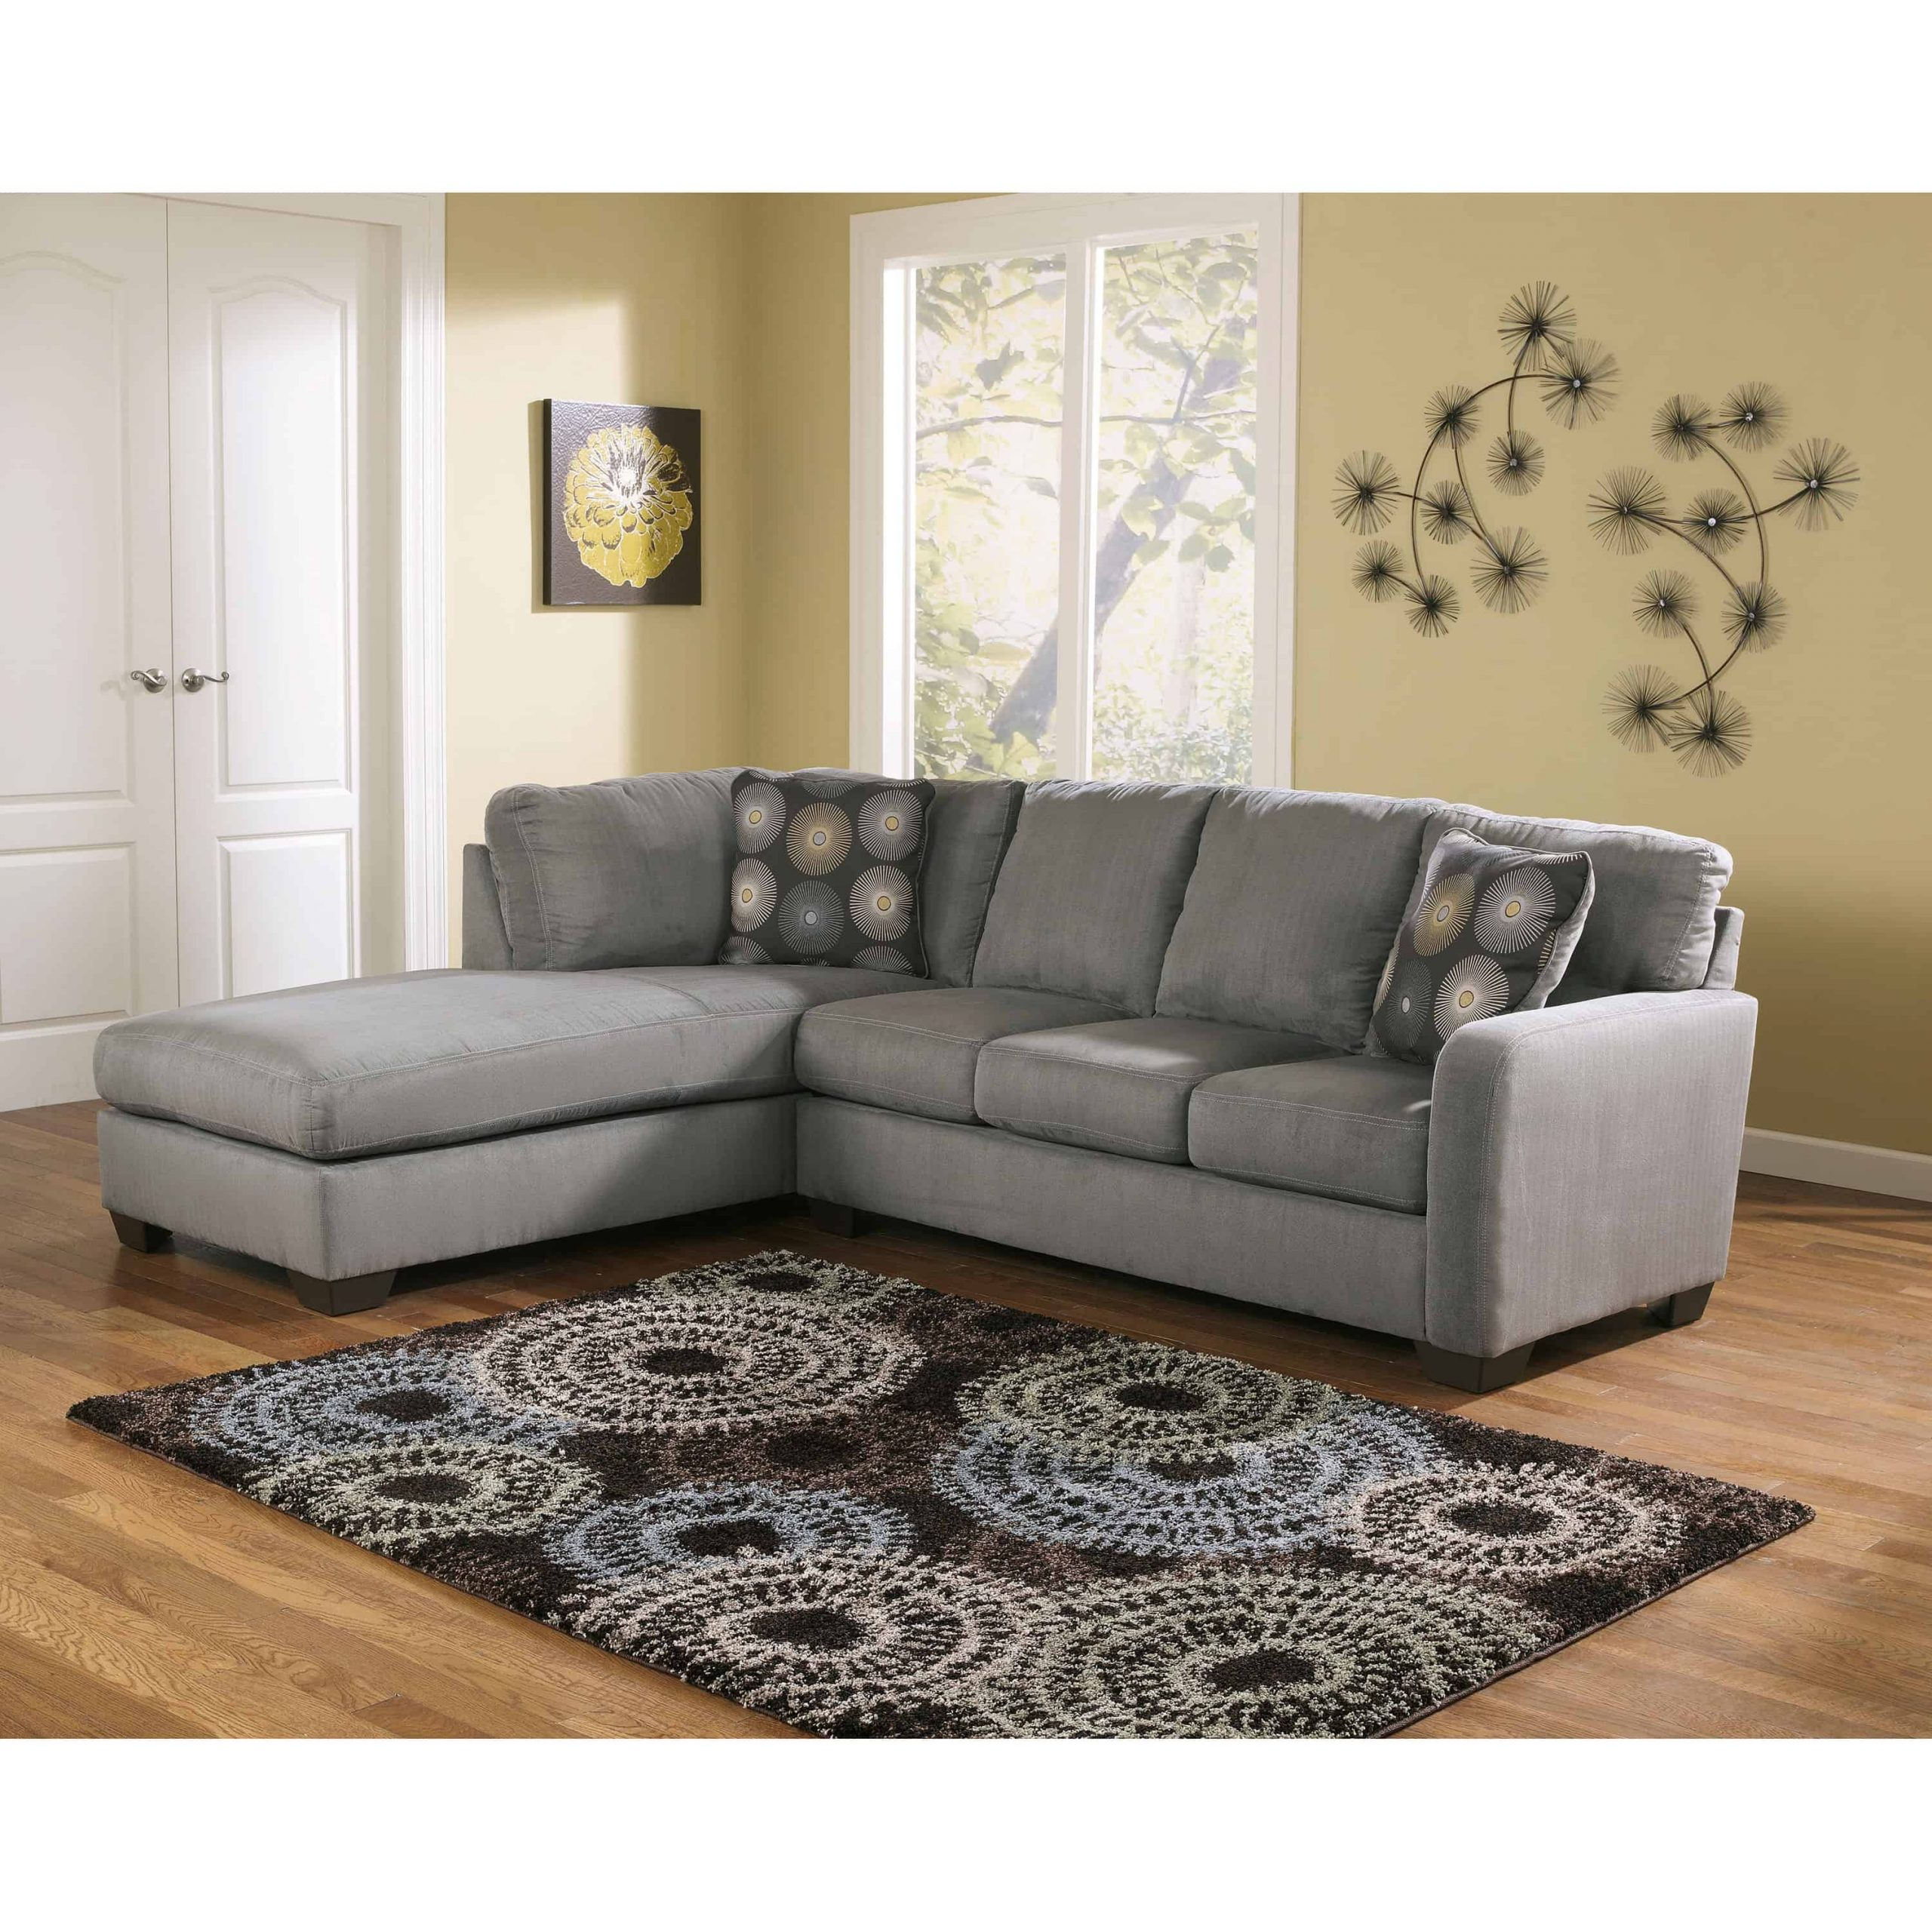 Zella 2 Piece Laf Chaise Sectional   Furnishmyhome (View 15 of 15)